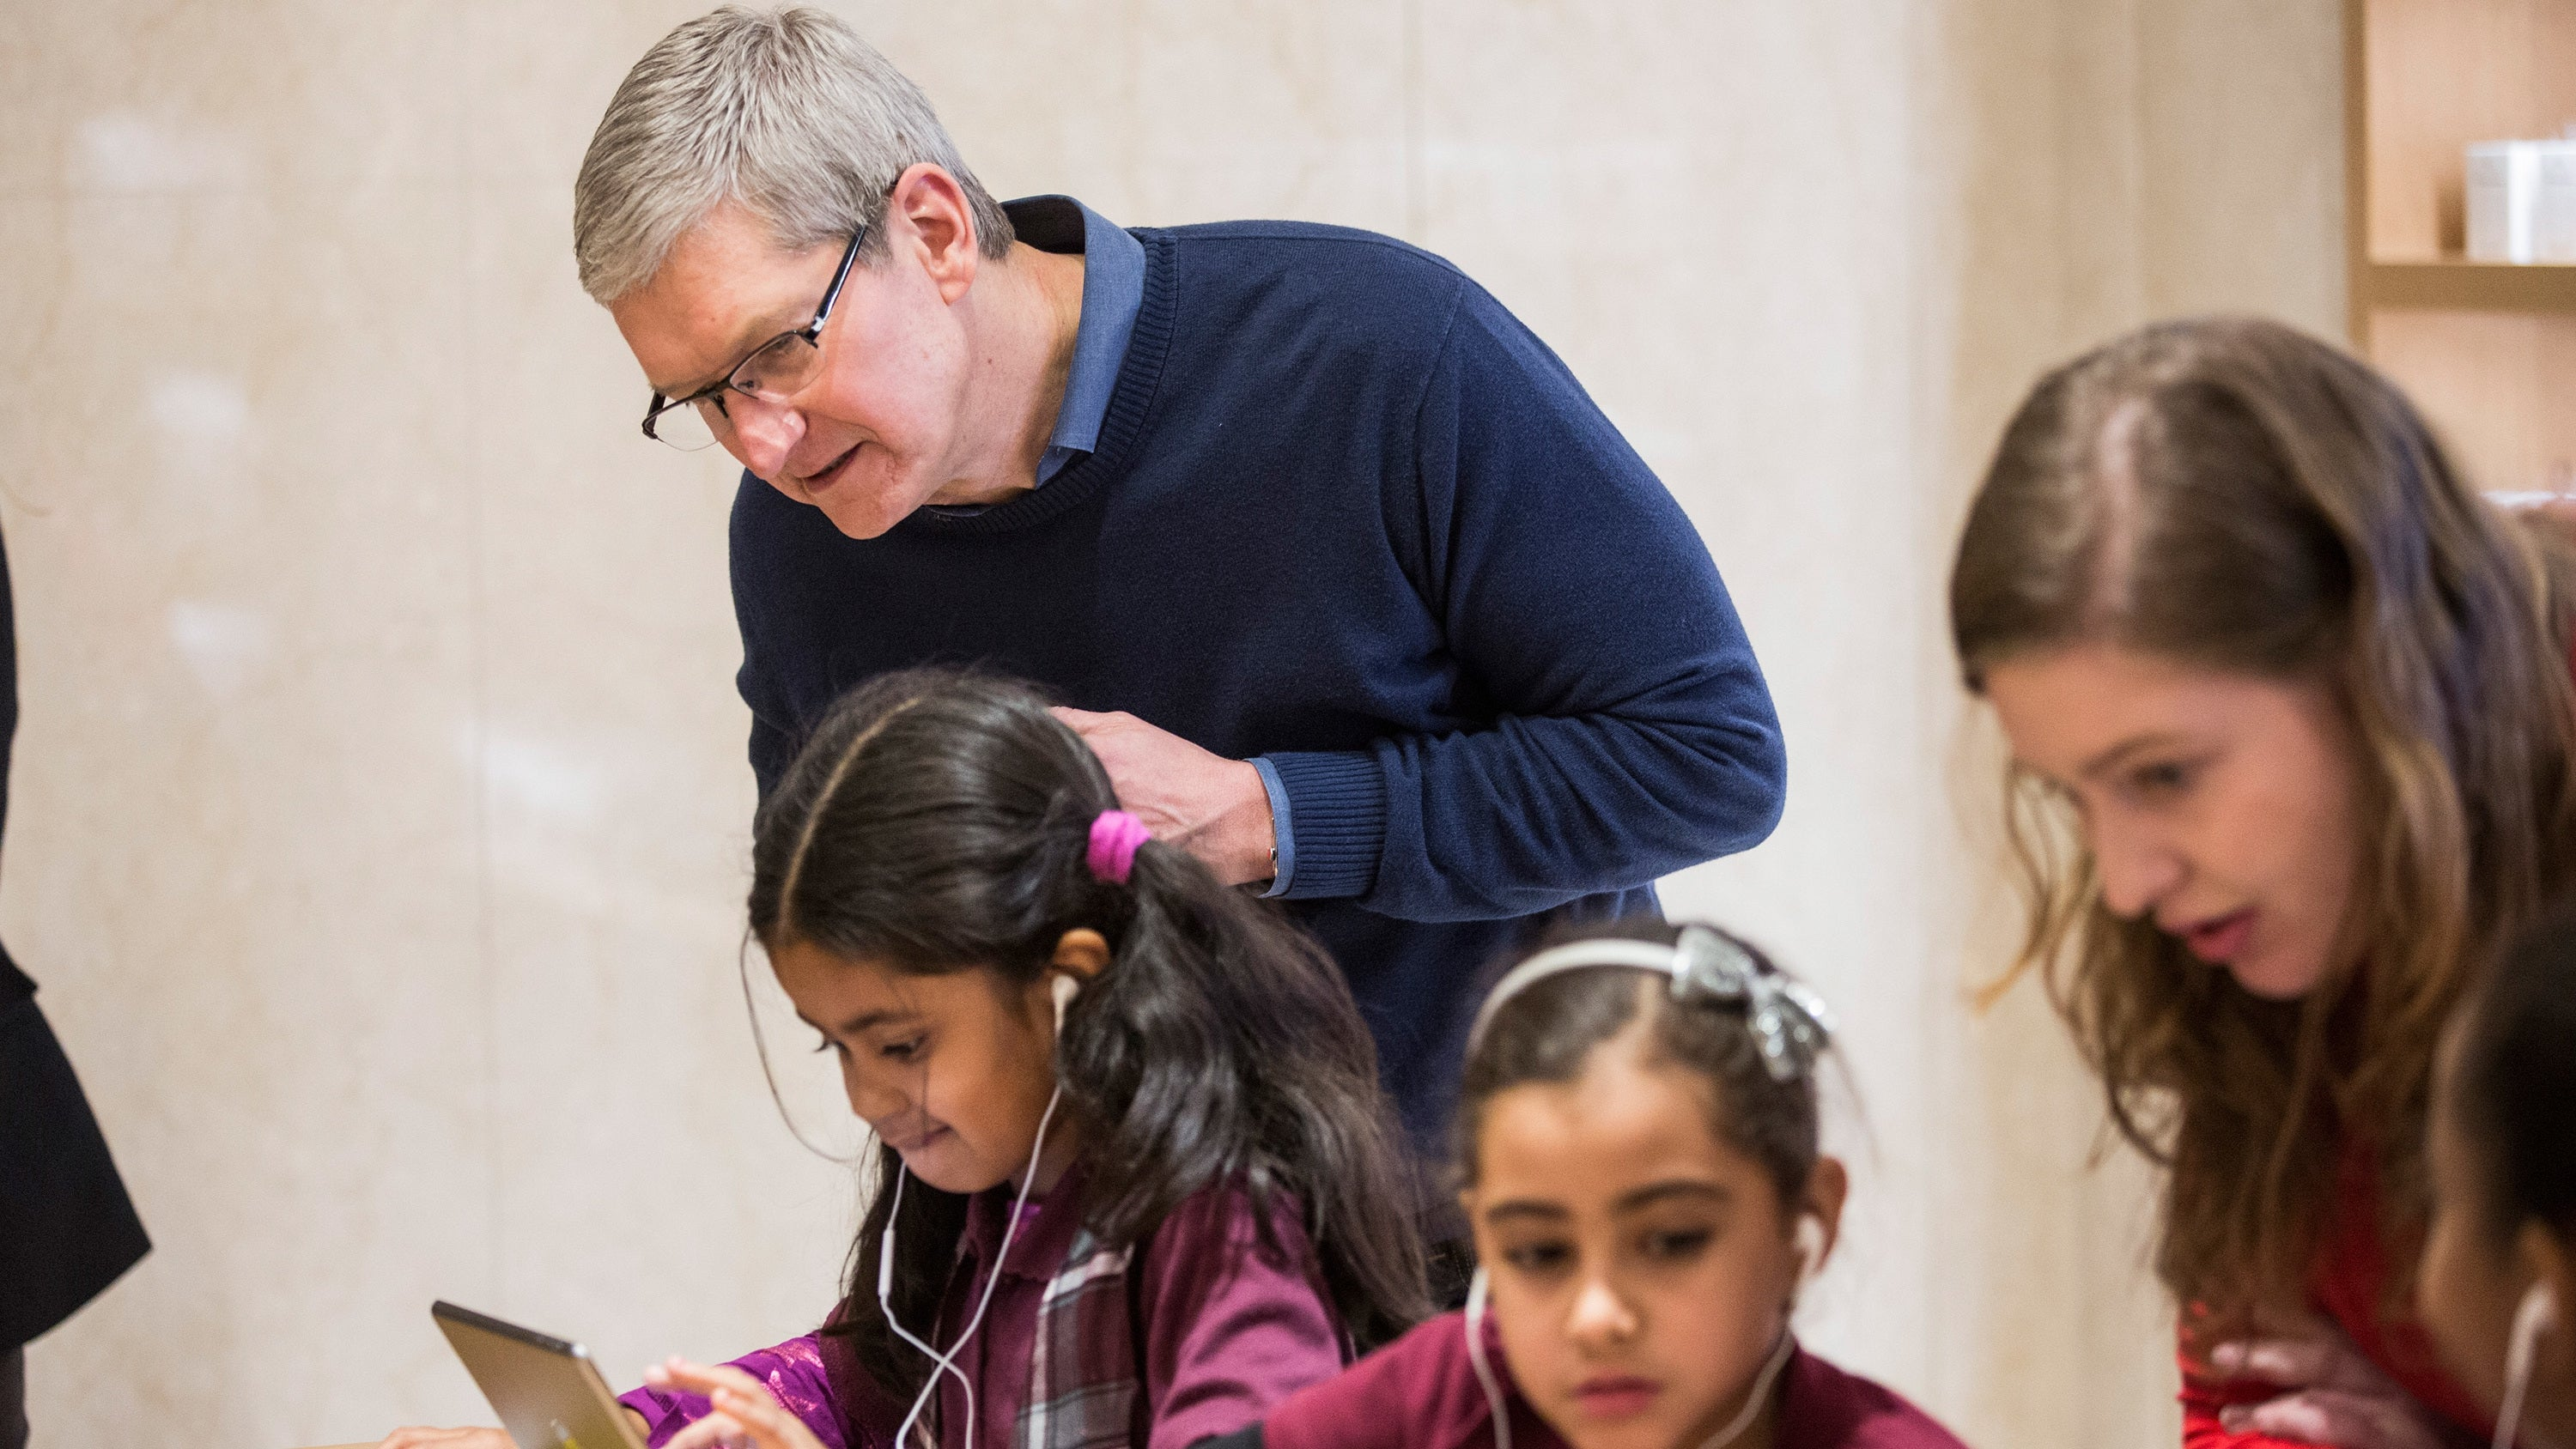 Apple Products Actually Really Great For Kids, Apple Says